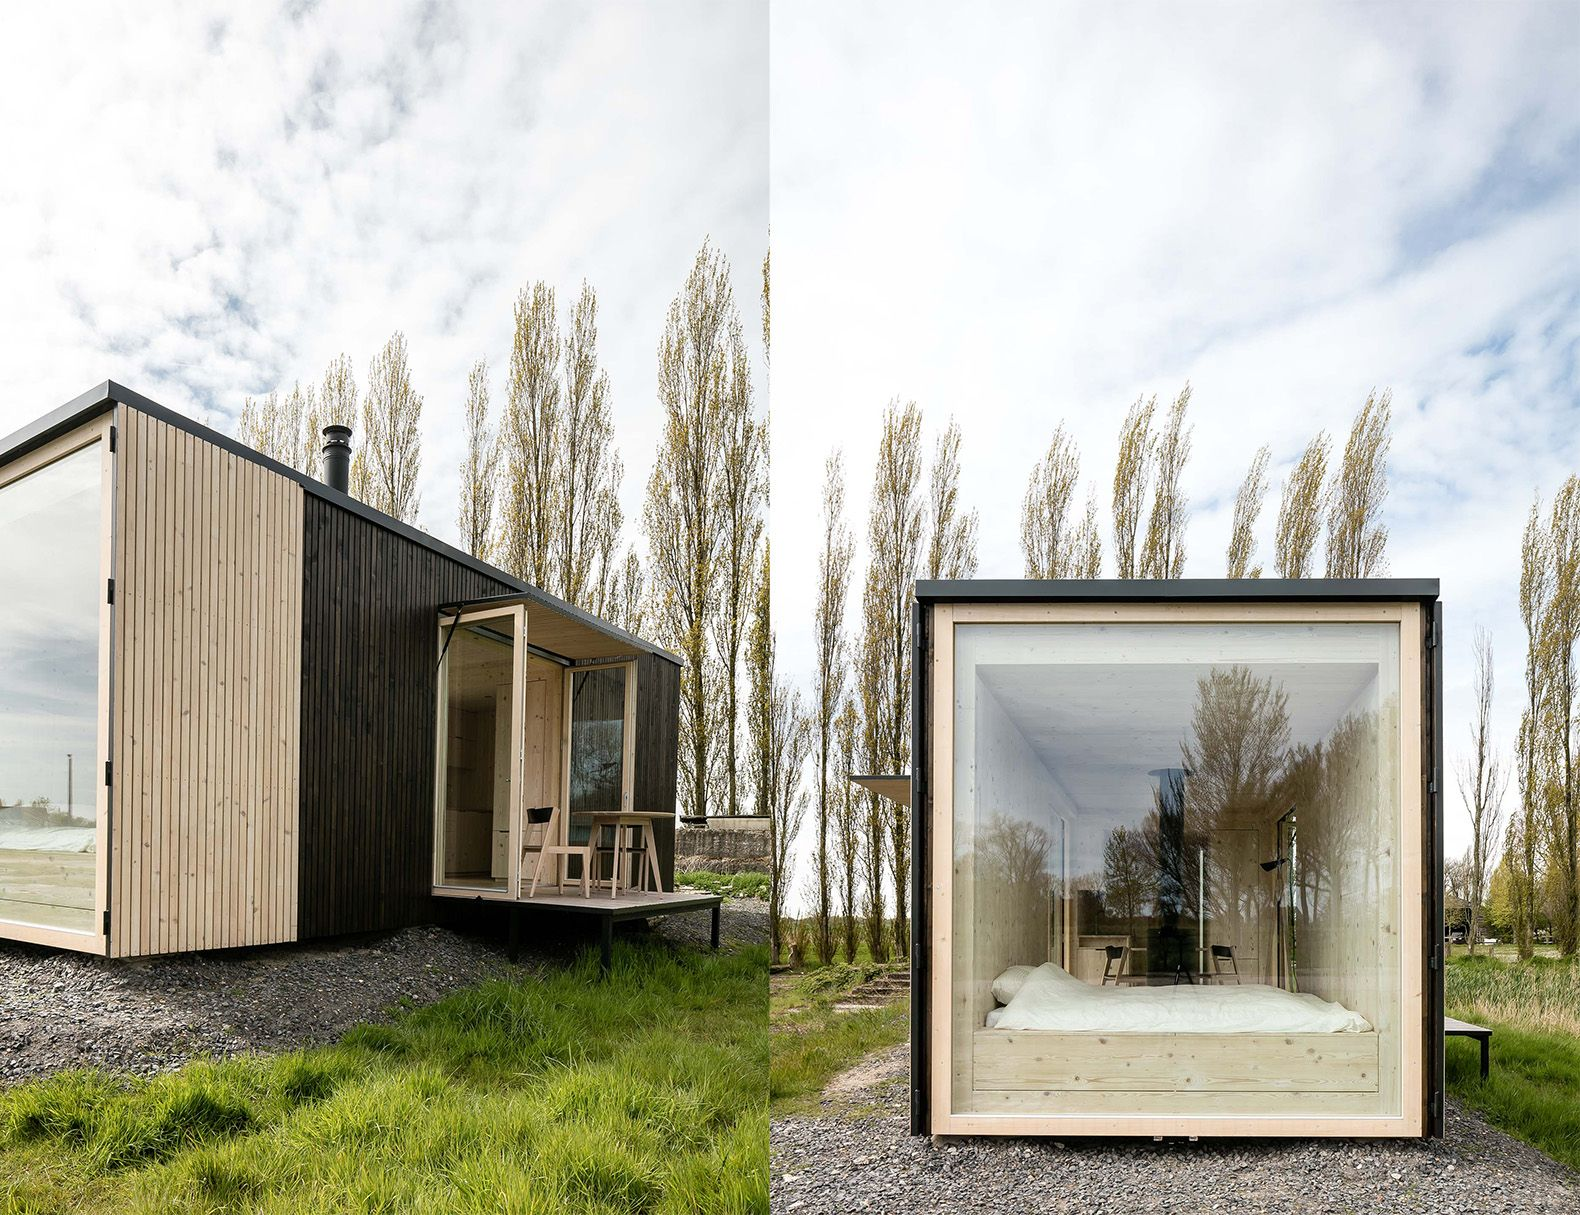 Off The Grid Prefab Homes Escape City Life In A Luxe Off Grid Cabin That Can Pop Up Almost